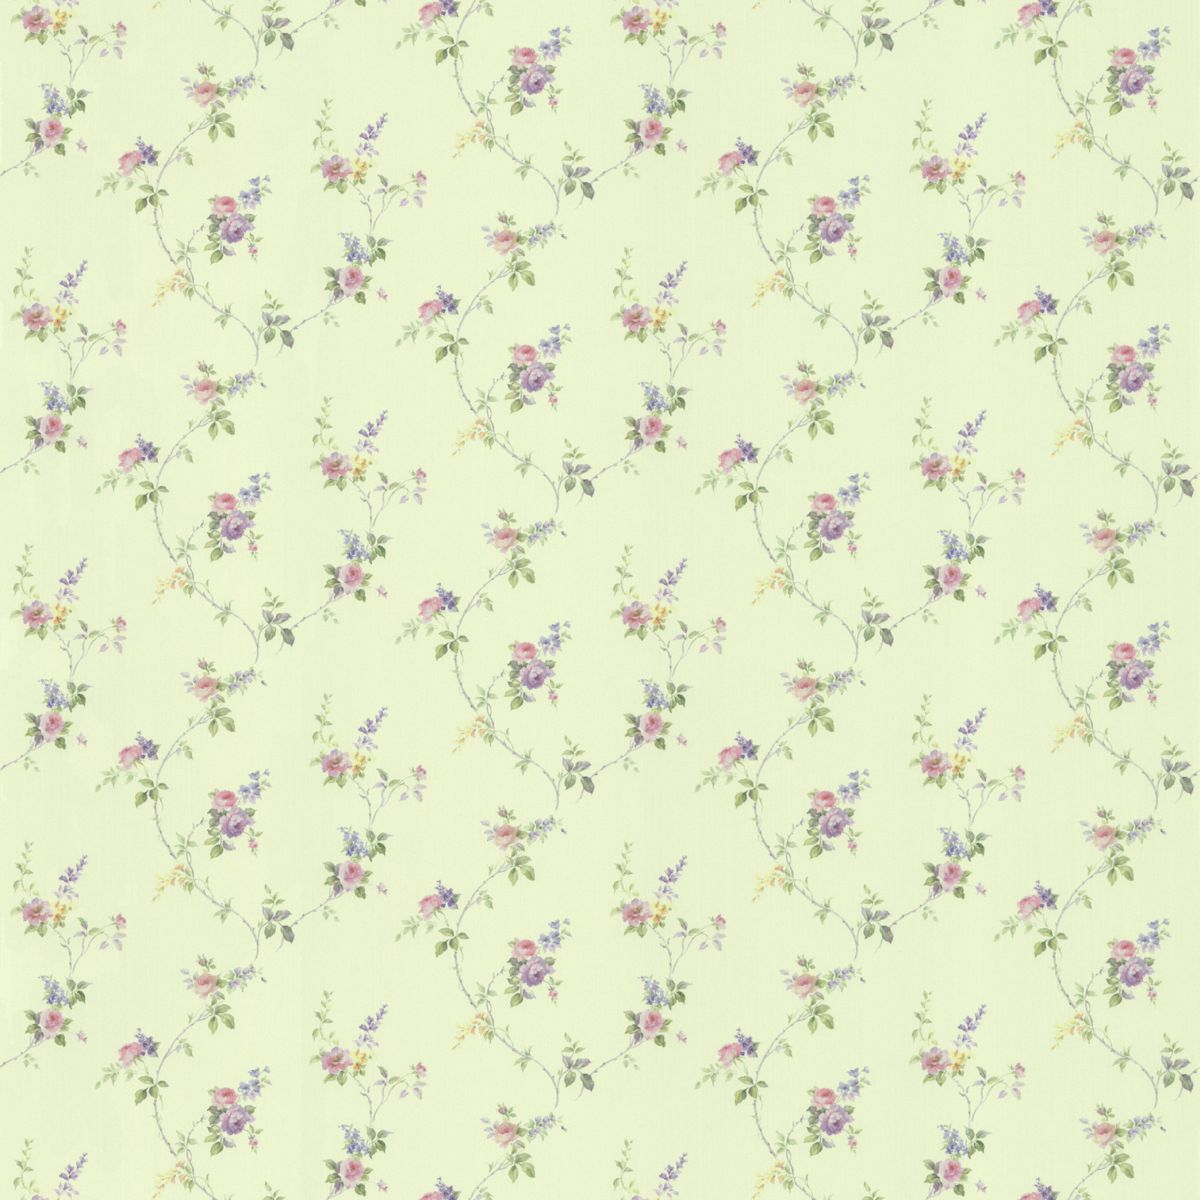 Country House Wallpaper Floral Prints Pr33810 Floral Prints 2